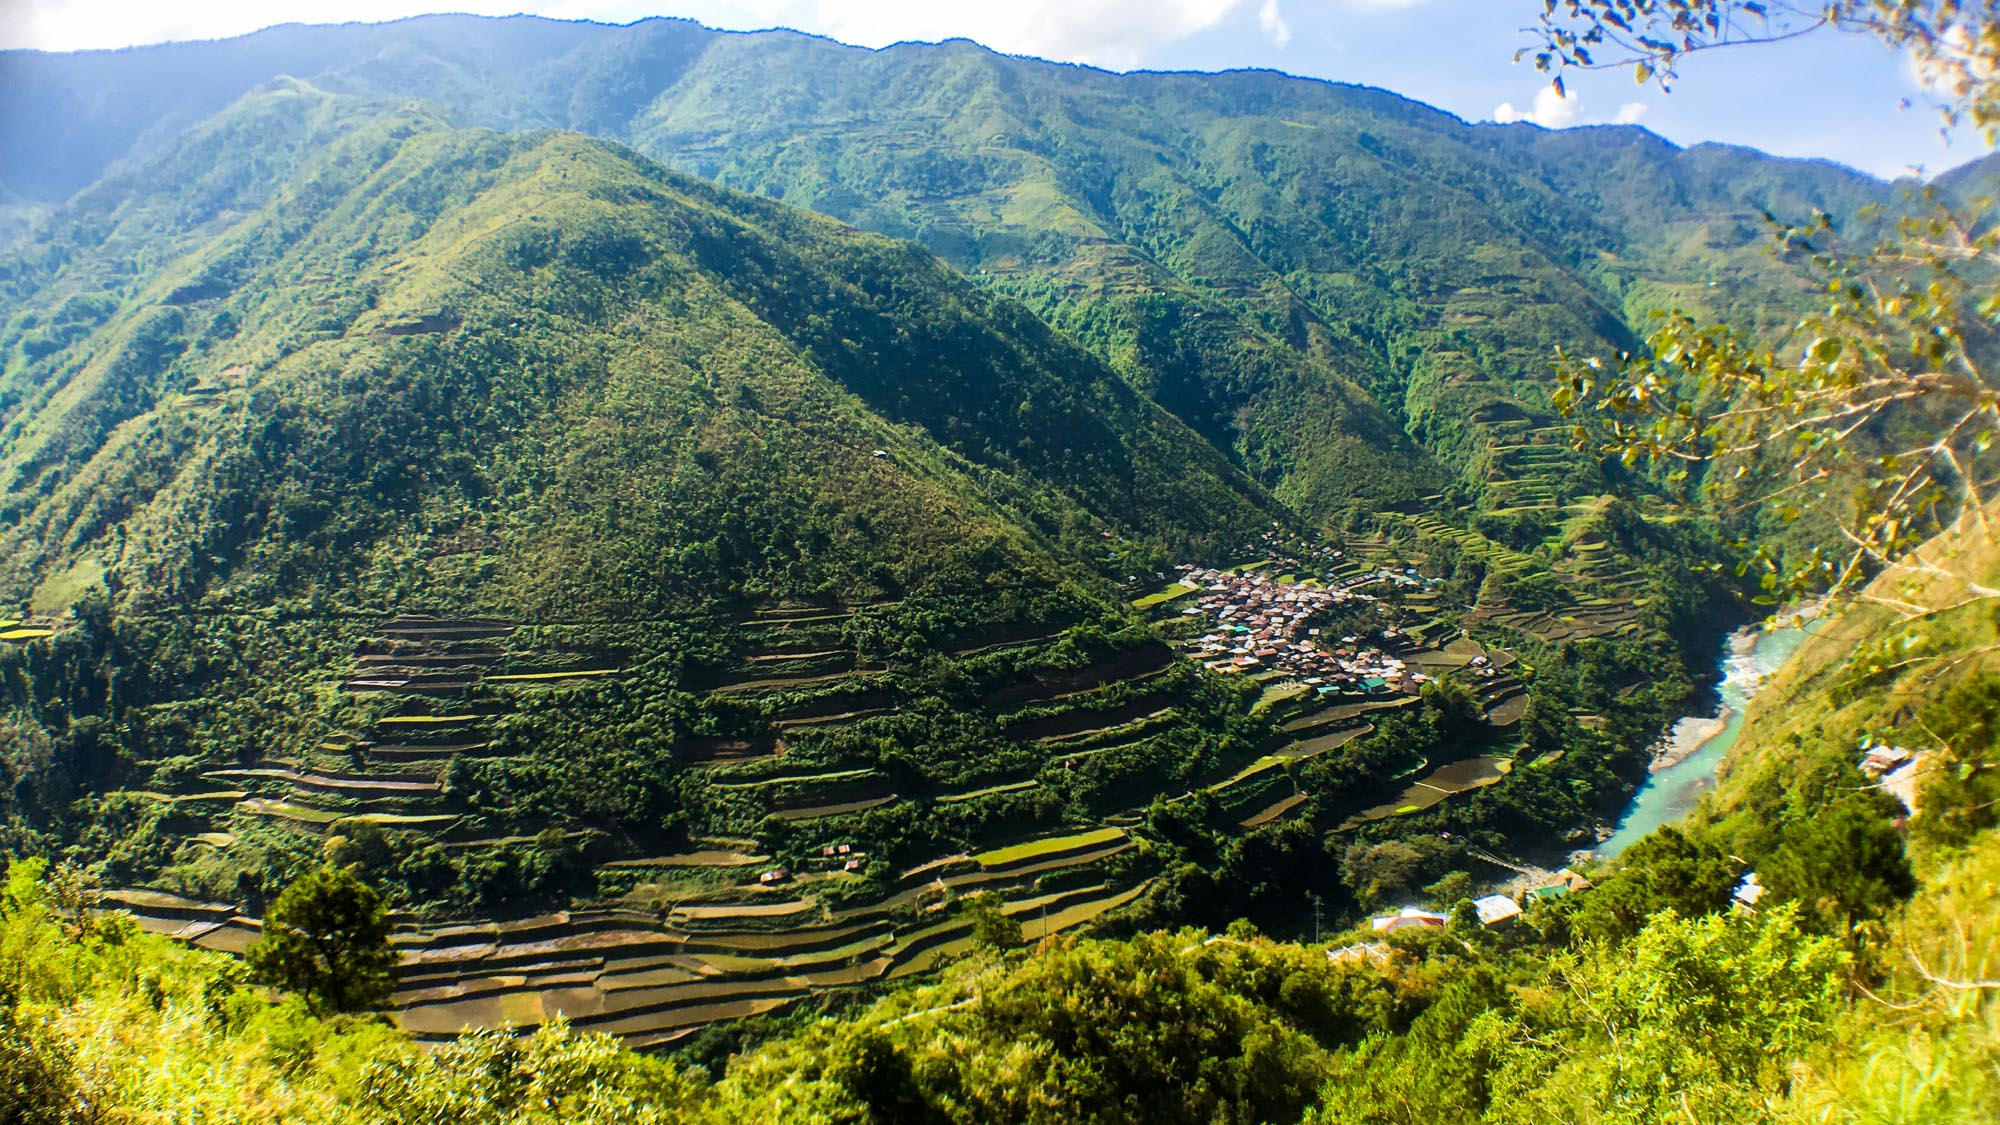 The view of Barangay Bugnay, Tinglayan, Kalinga while riding a habal-habal.